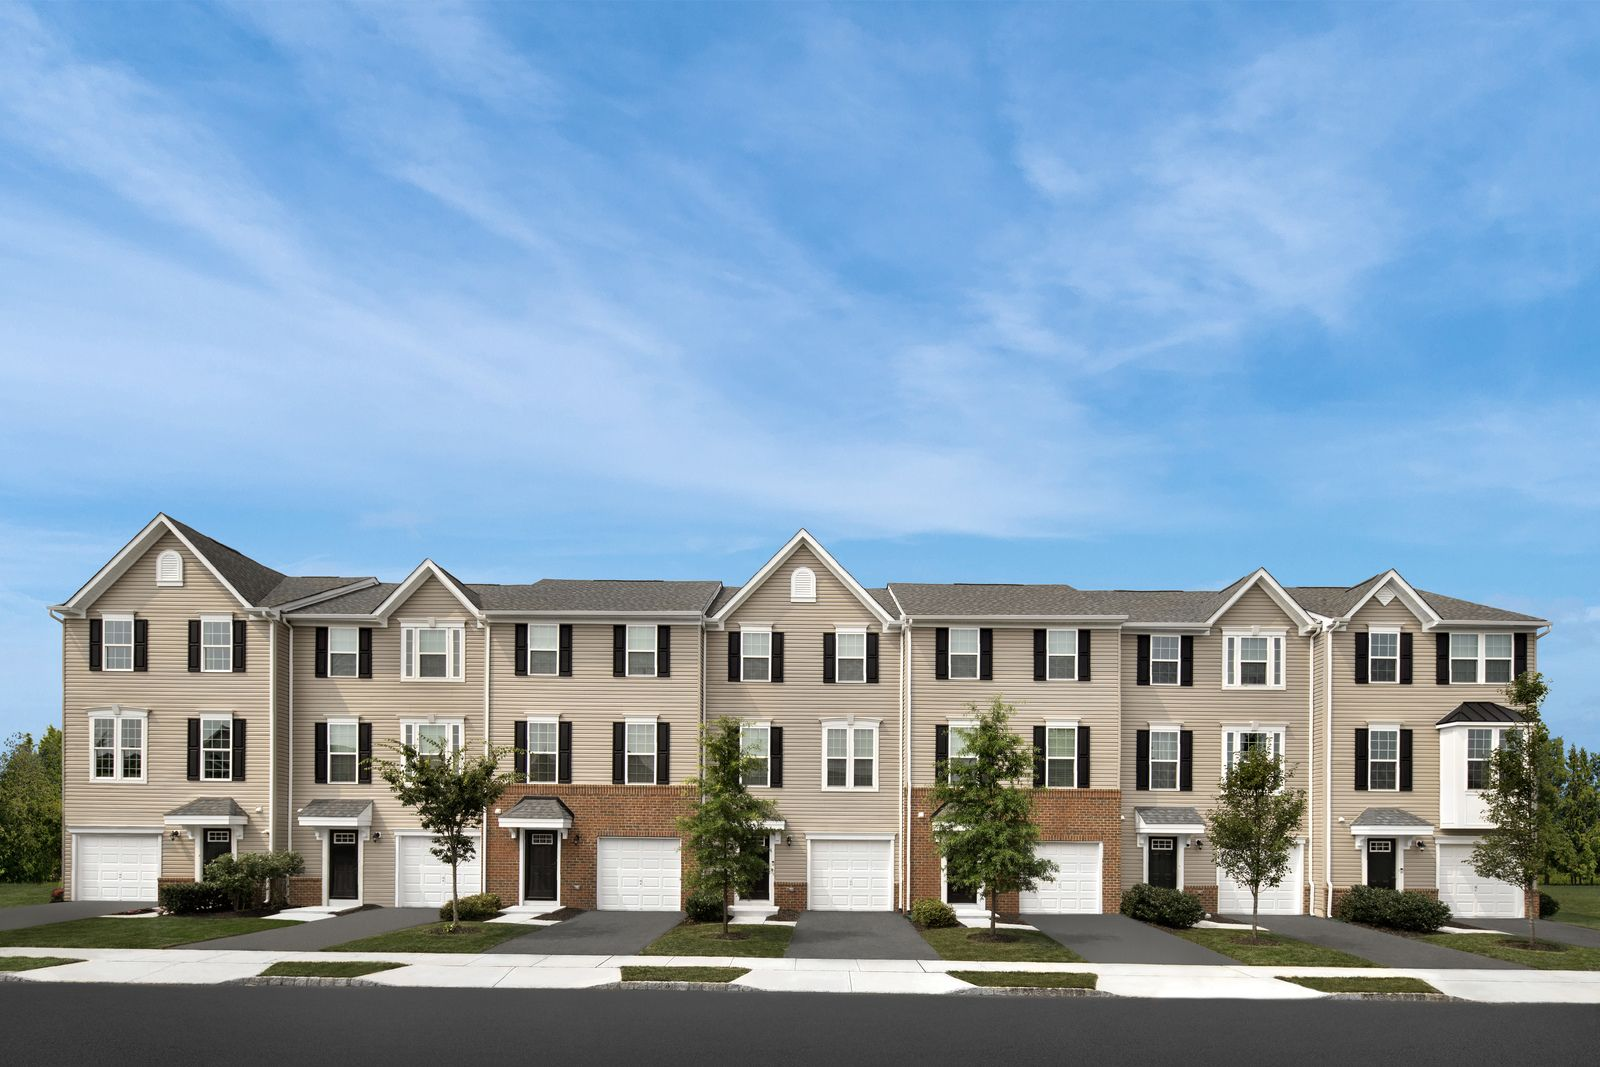 Welcome to Water Club Towns:The only townhome community in South Jersey offering a pool, gym, dog park & low maintenance living. 5 miles to Philly & 1/8 mile from the River LINE.Click here to schedule your visit. Photograph (1)